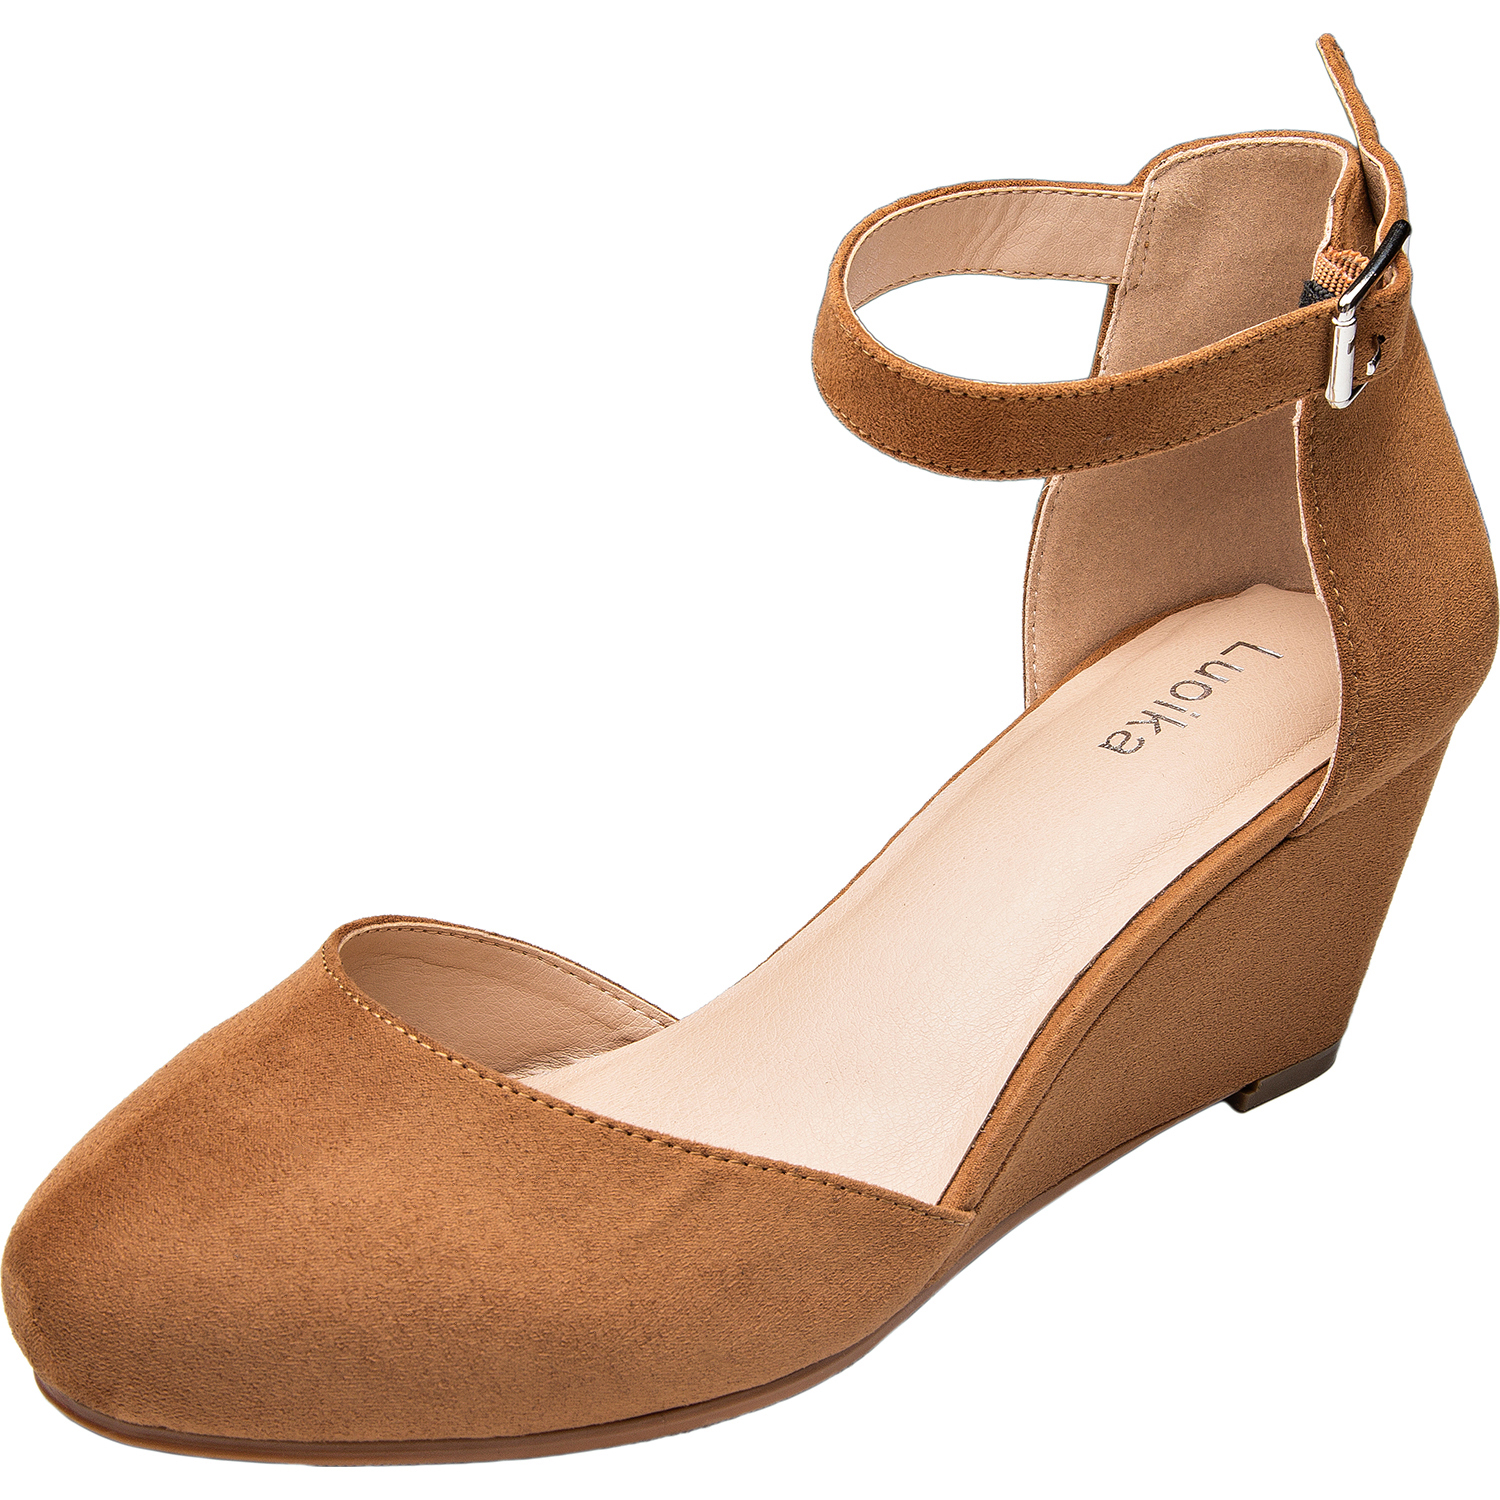 b0f93a99467 US  39.99 - Luoika Women s Wide Width Mini Wedges - Comfortable Mid Low  Heel Ankle Buckle Strap